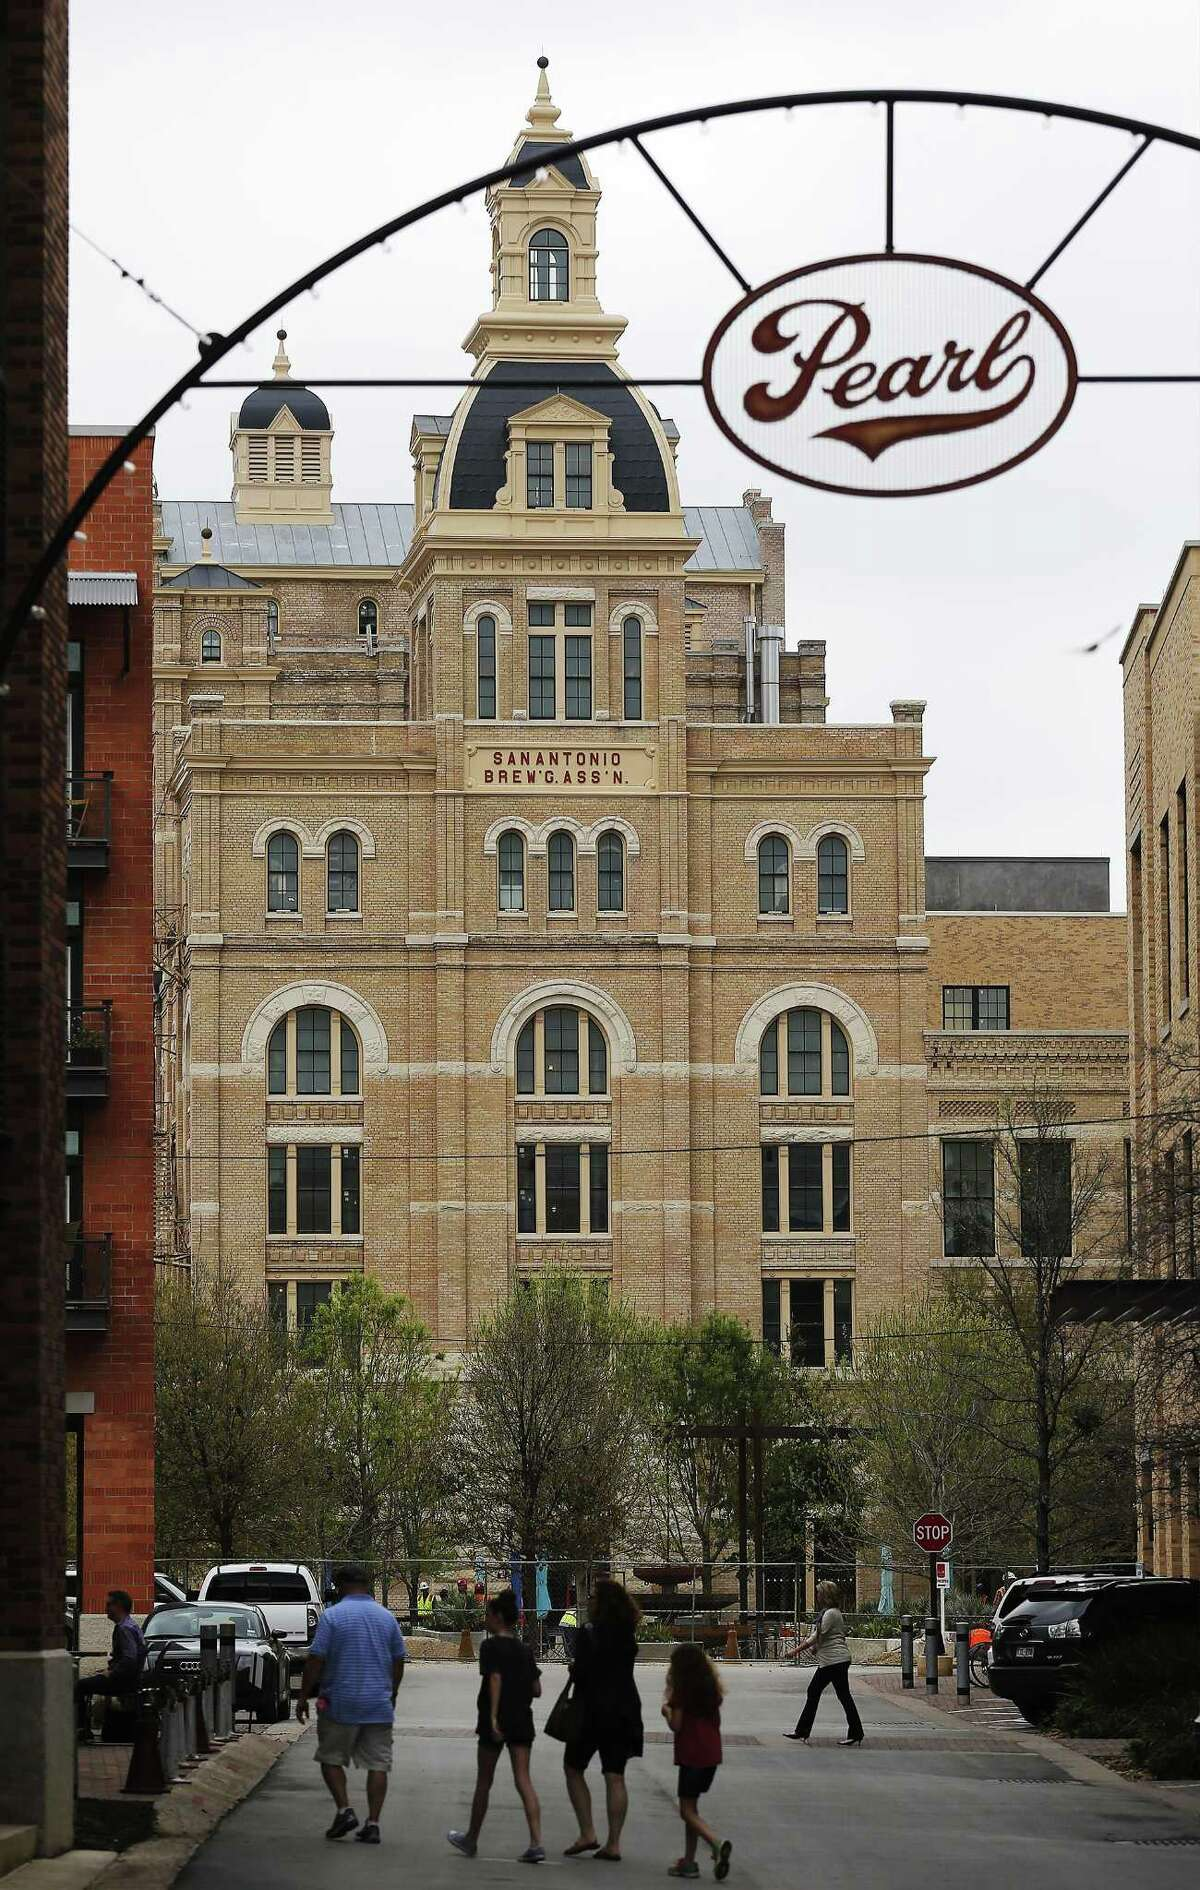 View of the former Pearl Brewery brewhouse, or Hotel Emma.